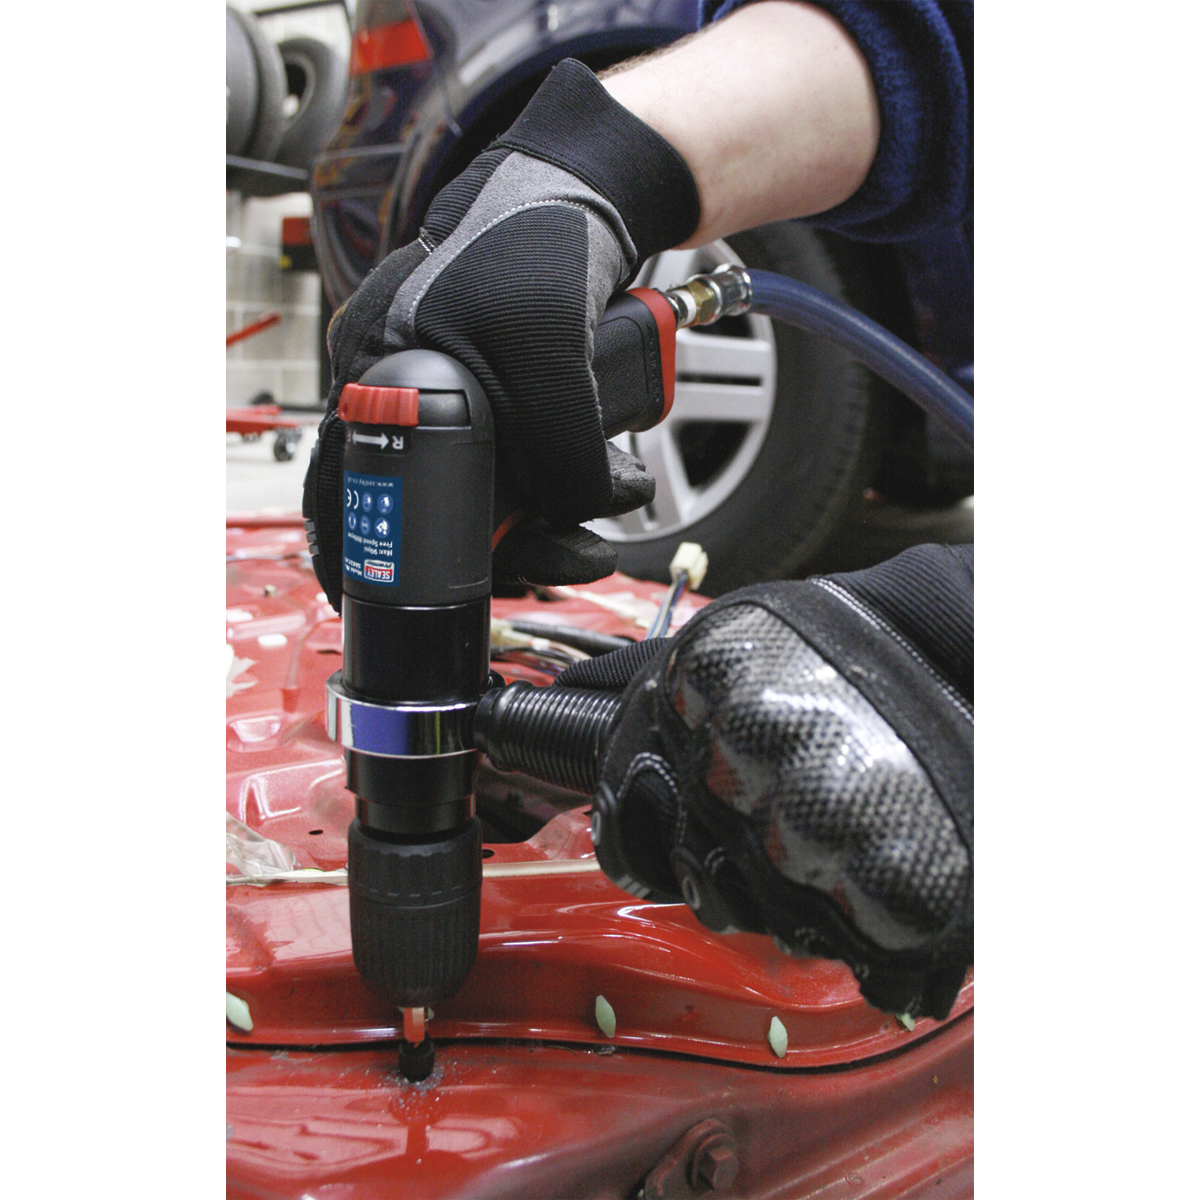 Air Drill Ø13mm with Keyless Chuck Composite Premier